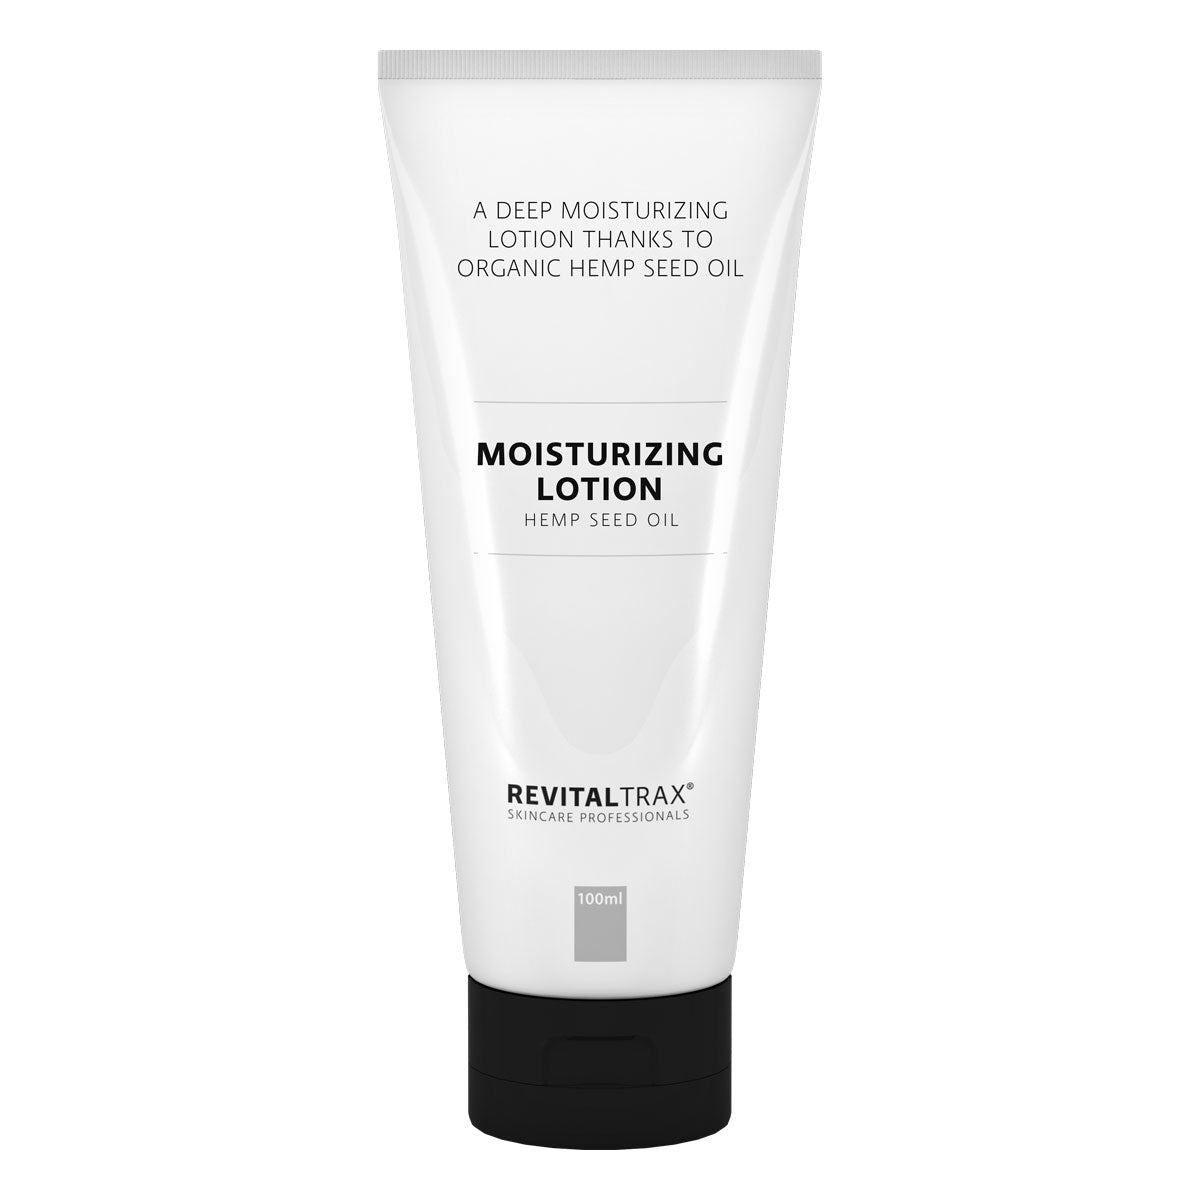 RevitalTrax Moisturizing Lotion. Diep hydraterende gezichts lotion met hemp seed oil.